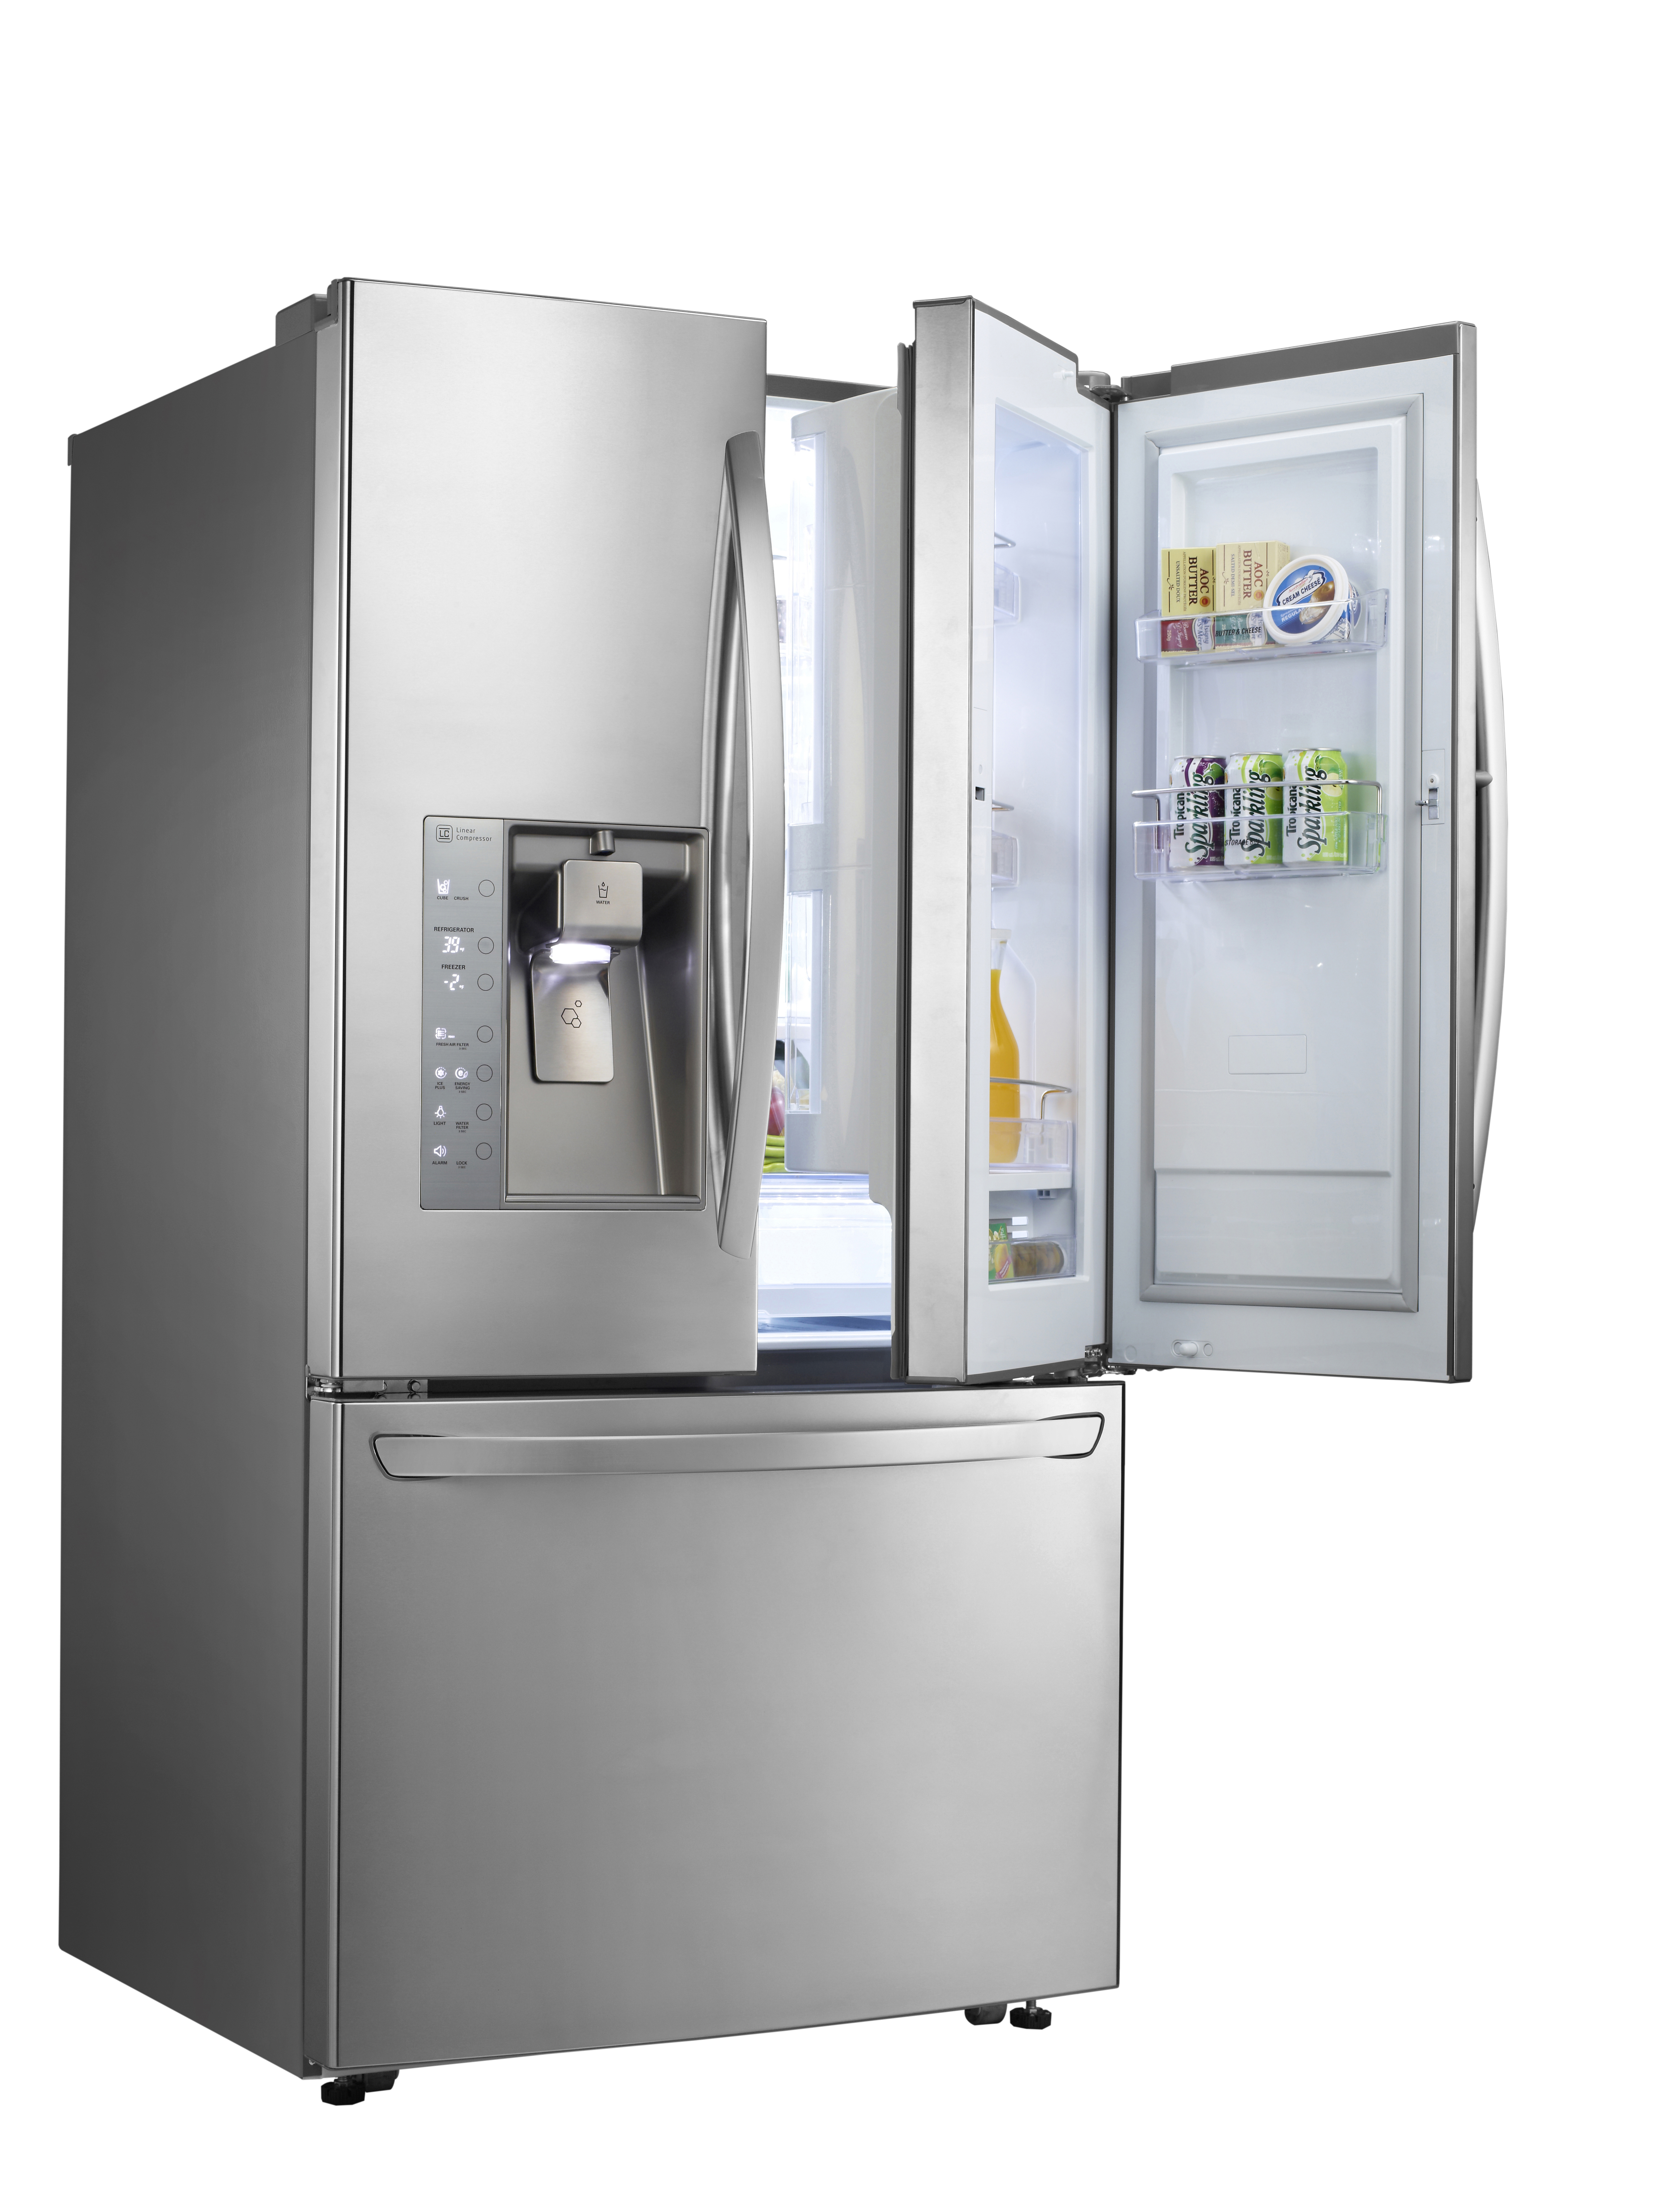 LG's three-door French-Door refrigerator with doors opened to show off its Door-in-Door feature